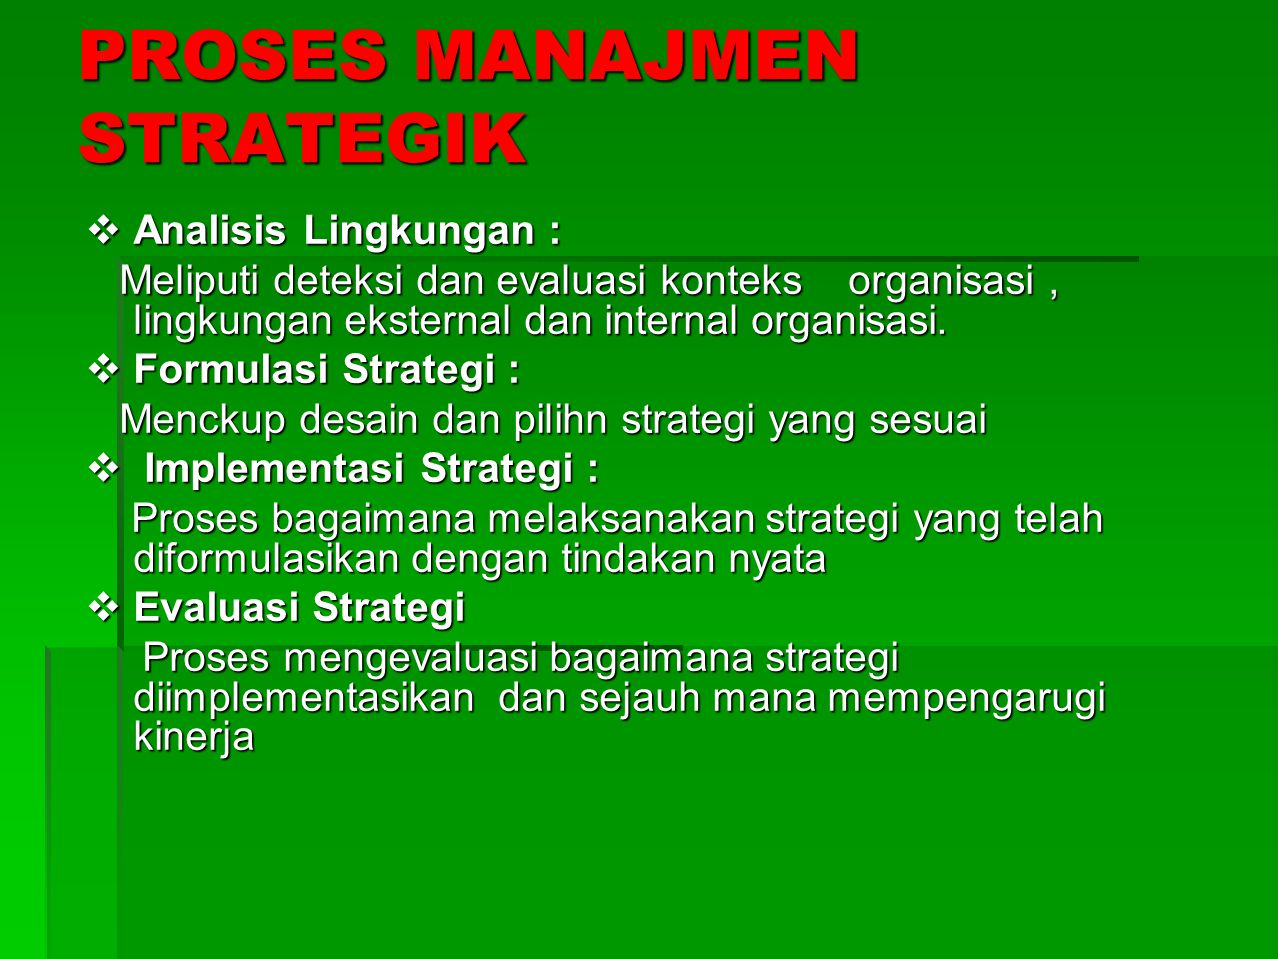 PROSES MANAJMEN STRATEGIK